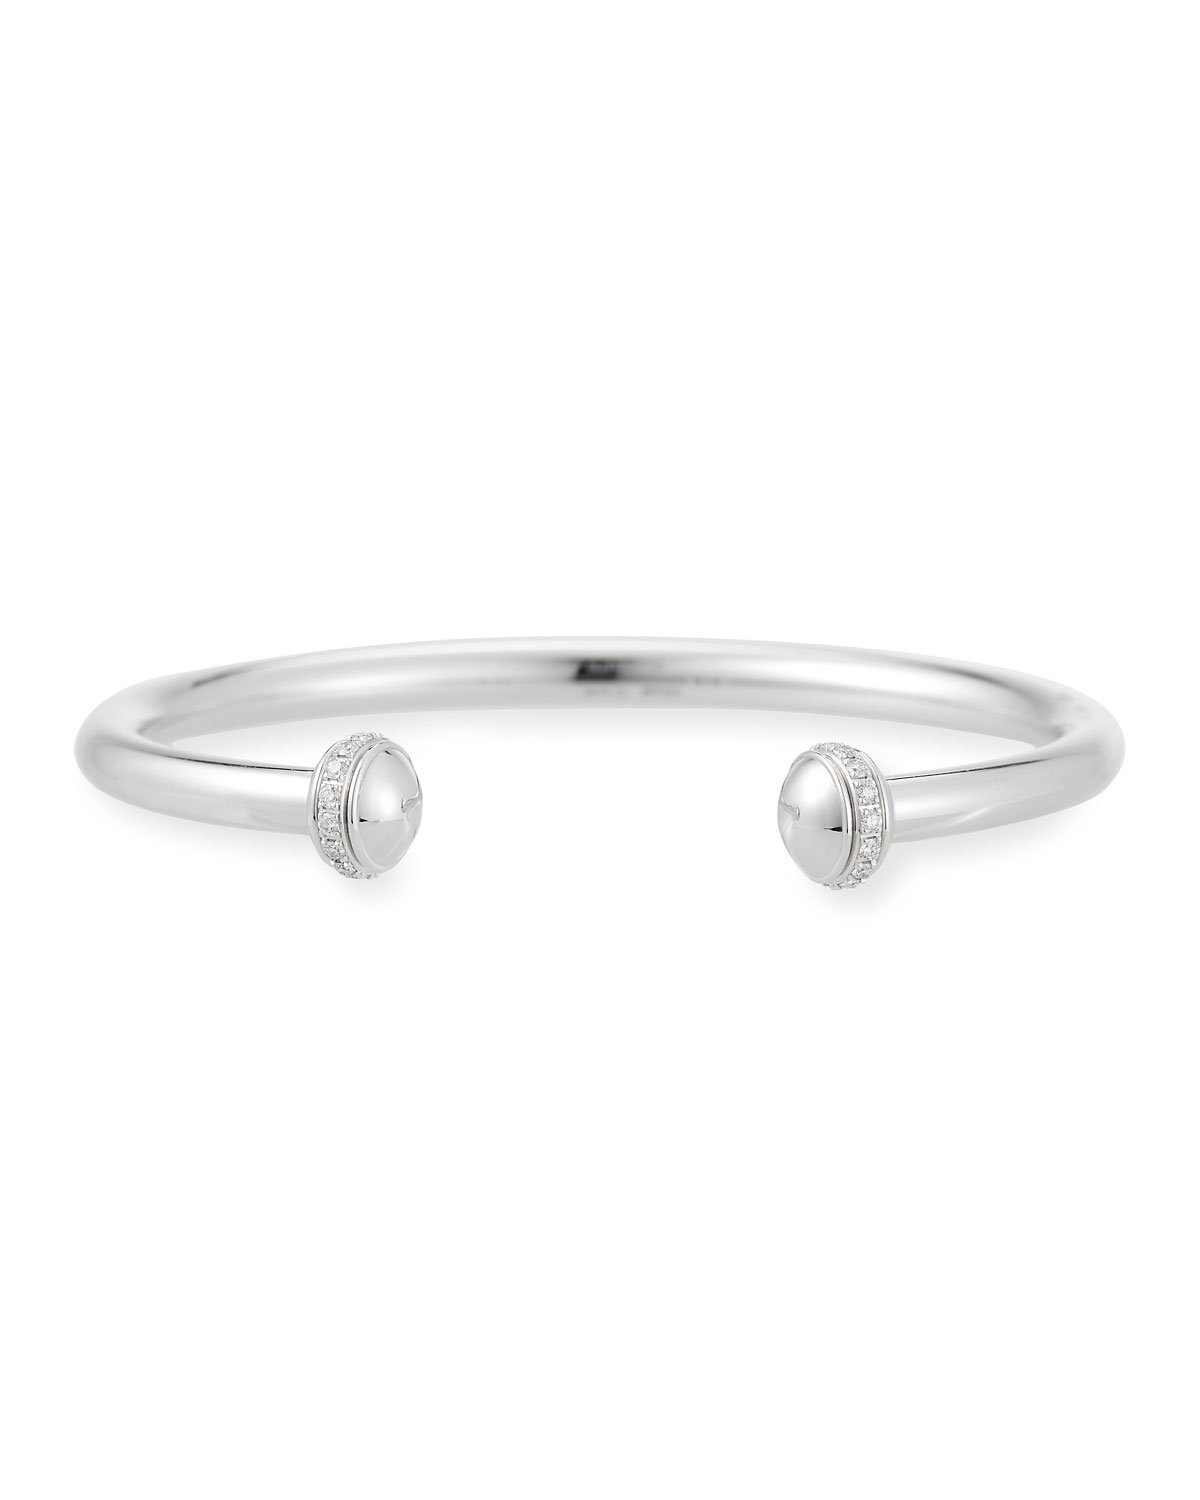 PIAGET Possession Open Cuff Bracelet with Diamonds in 18K White Gold   Neiman Marcus